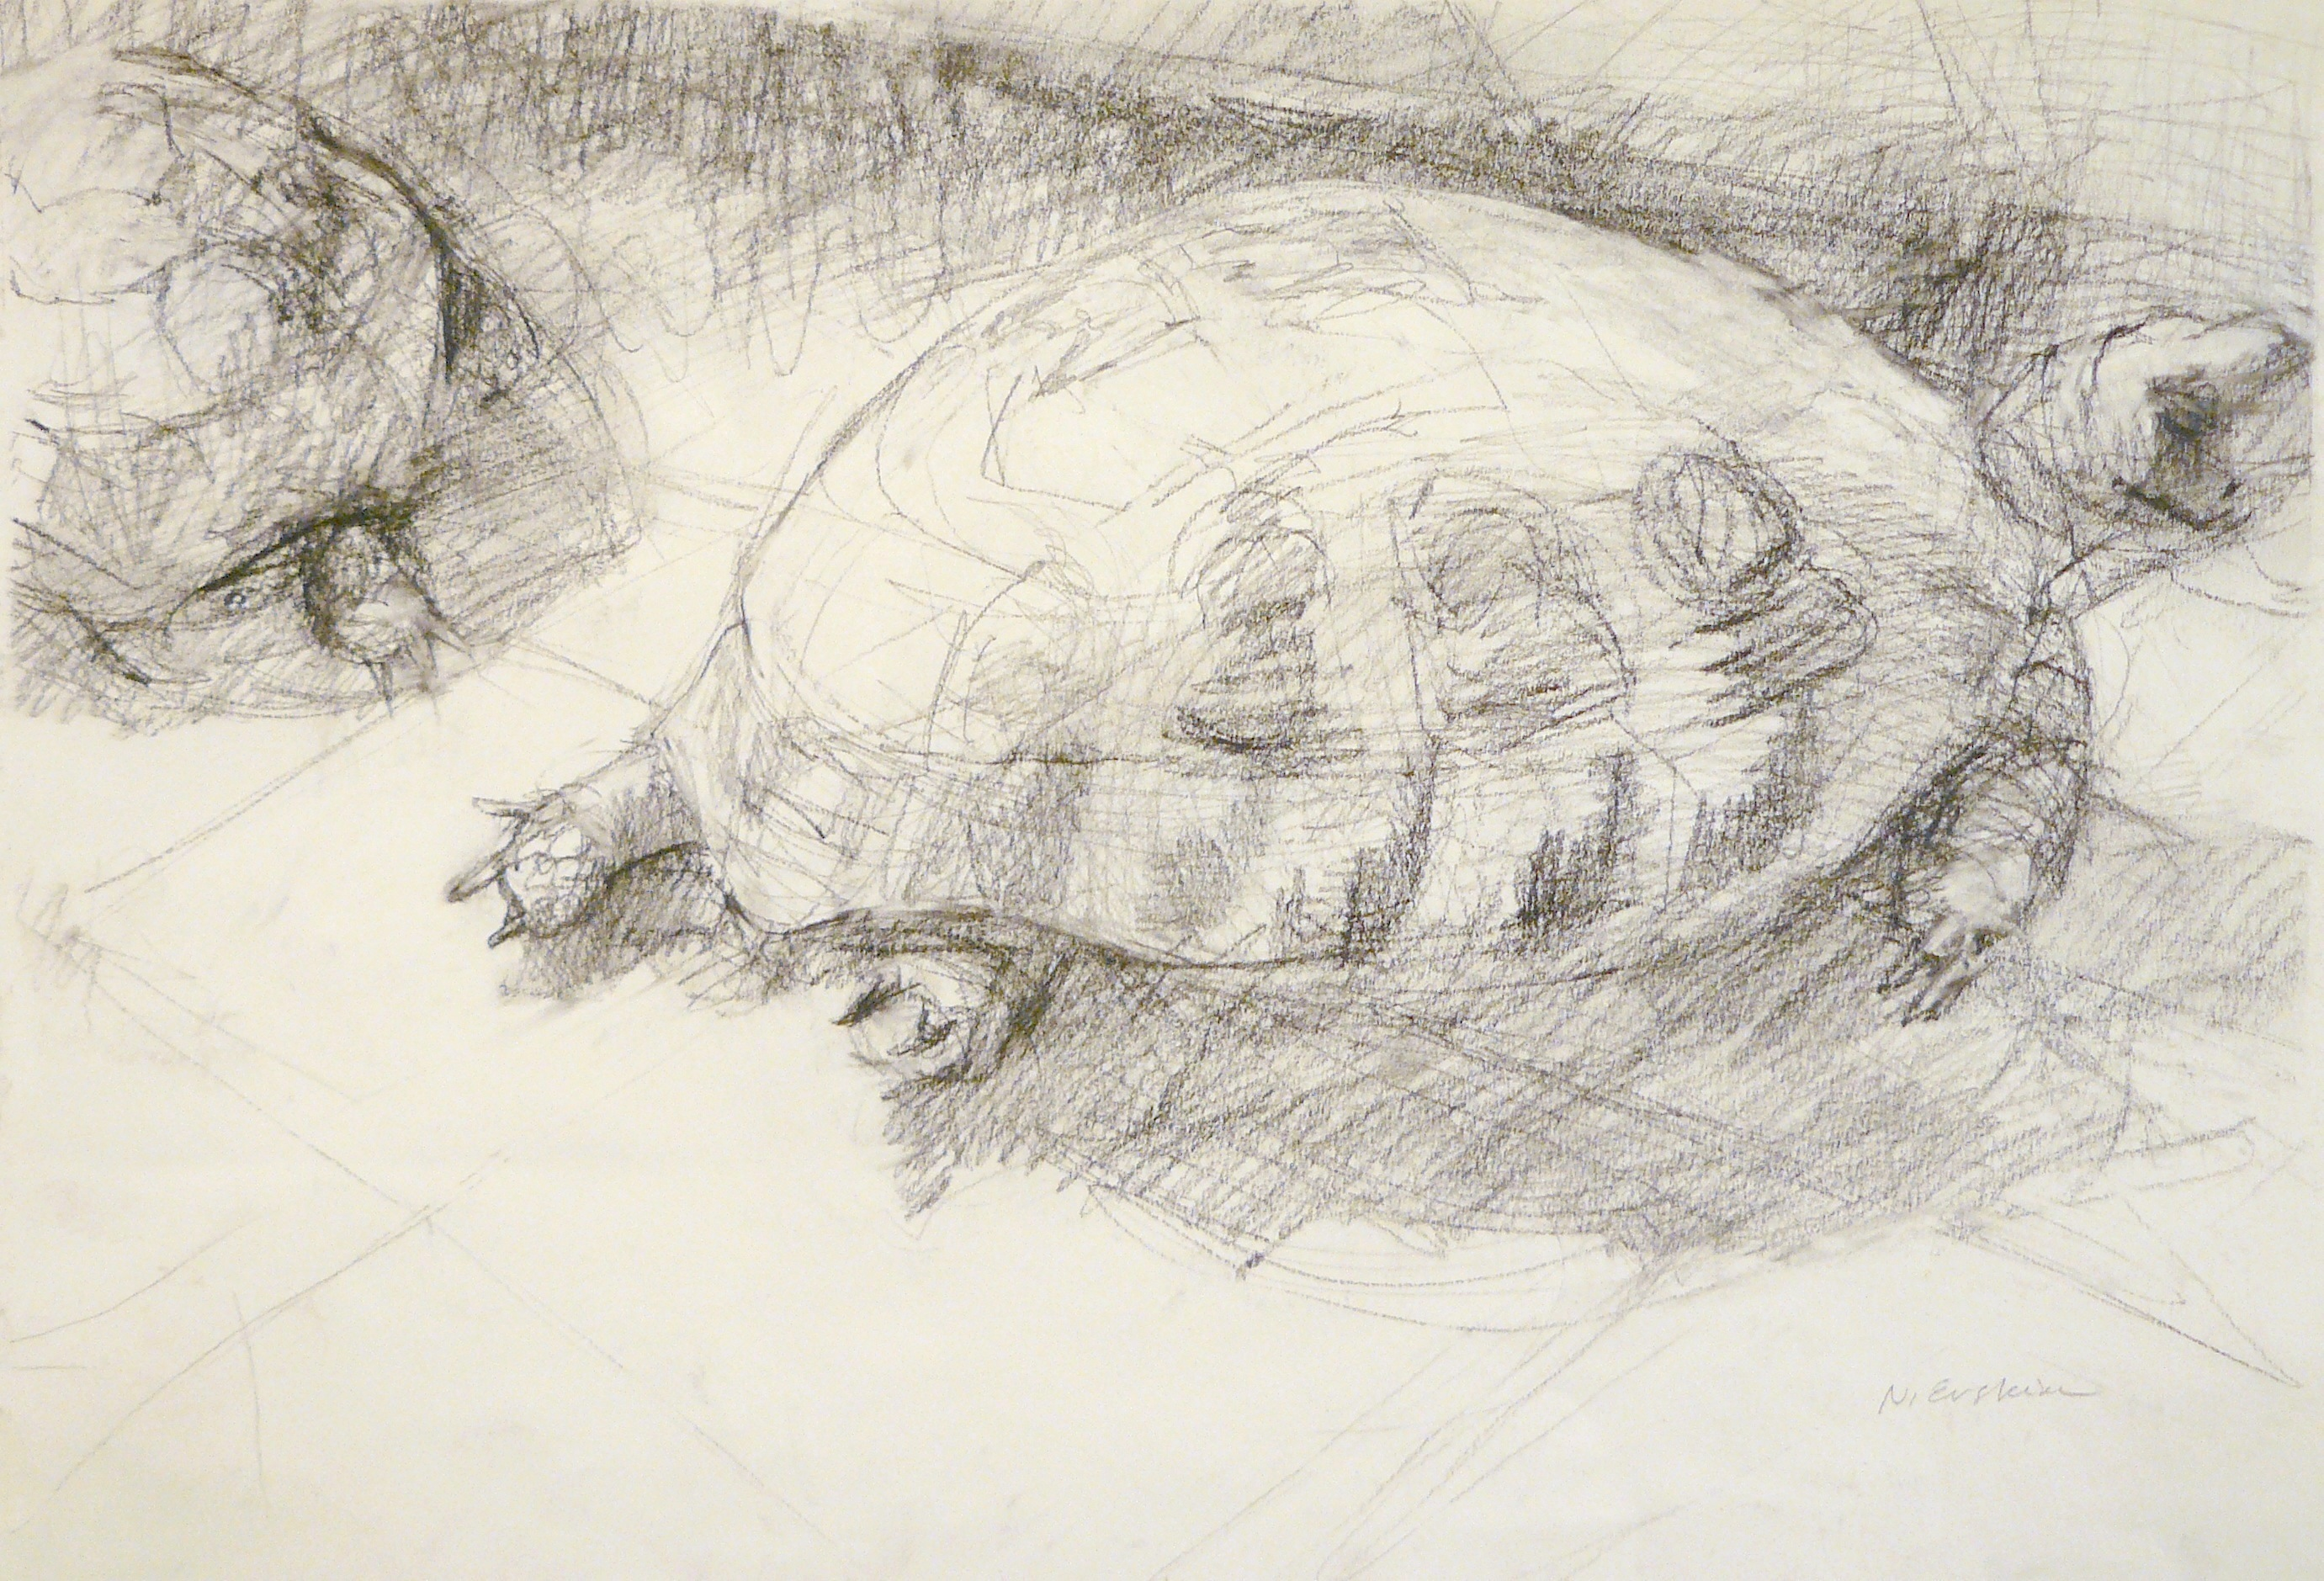 charcoal drawing of 2 turtles